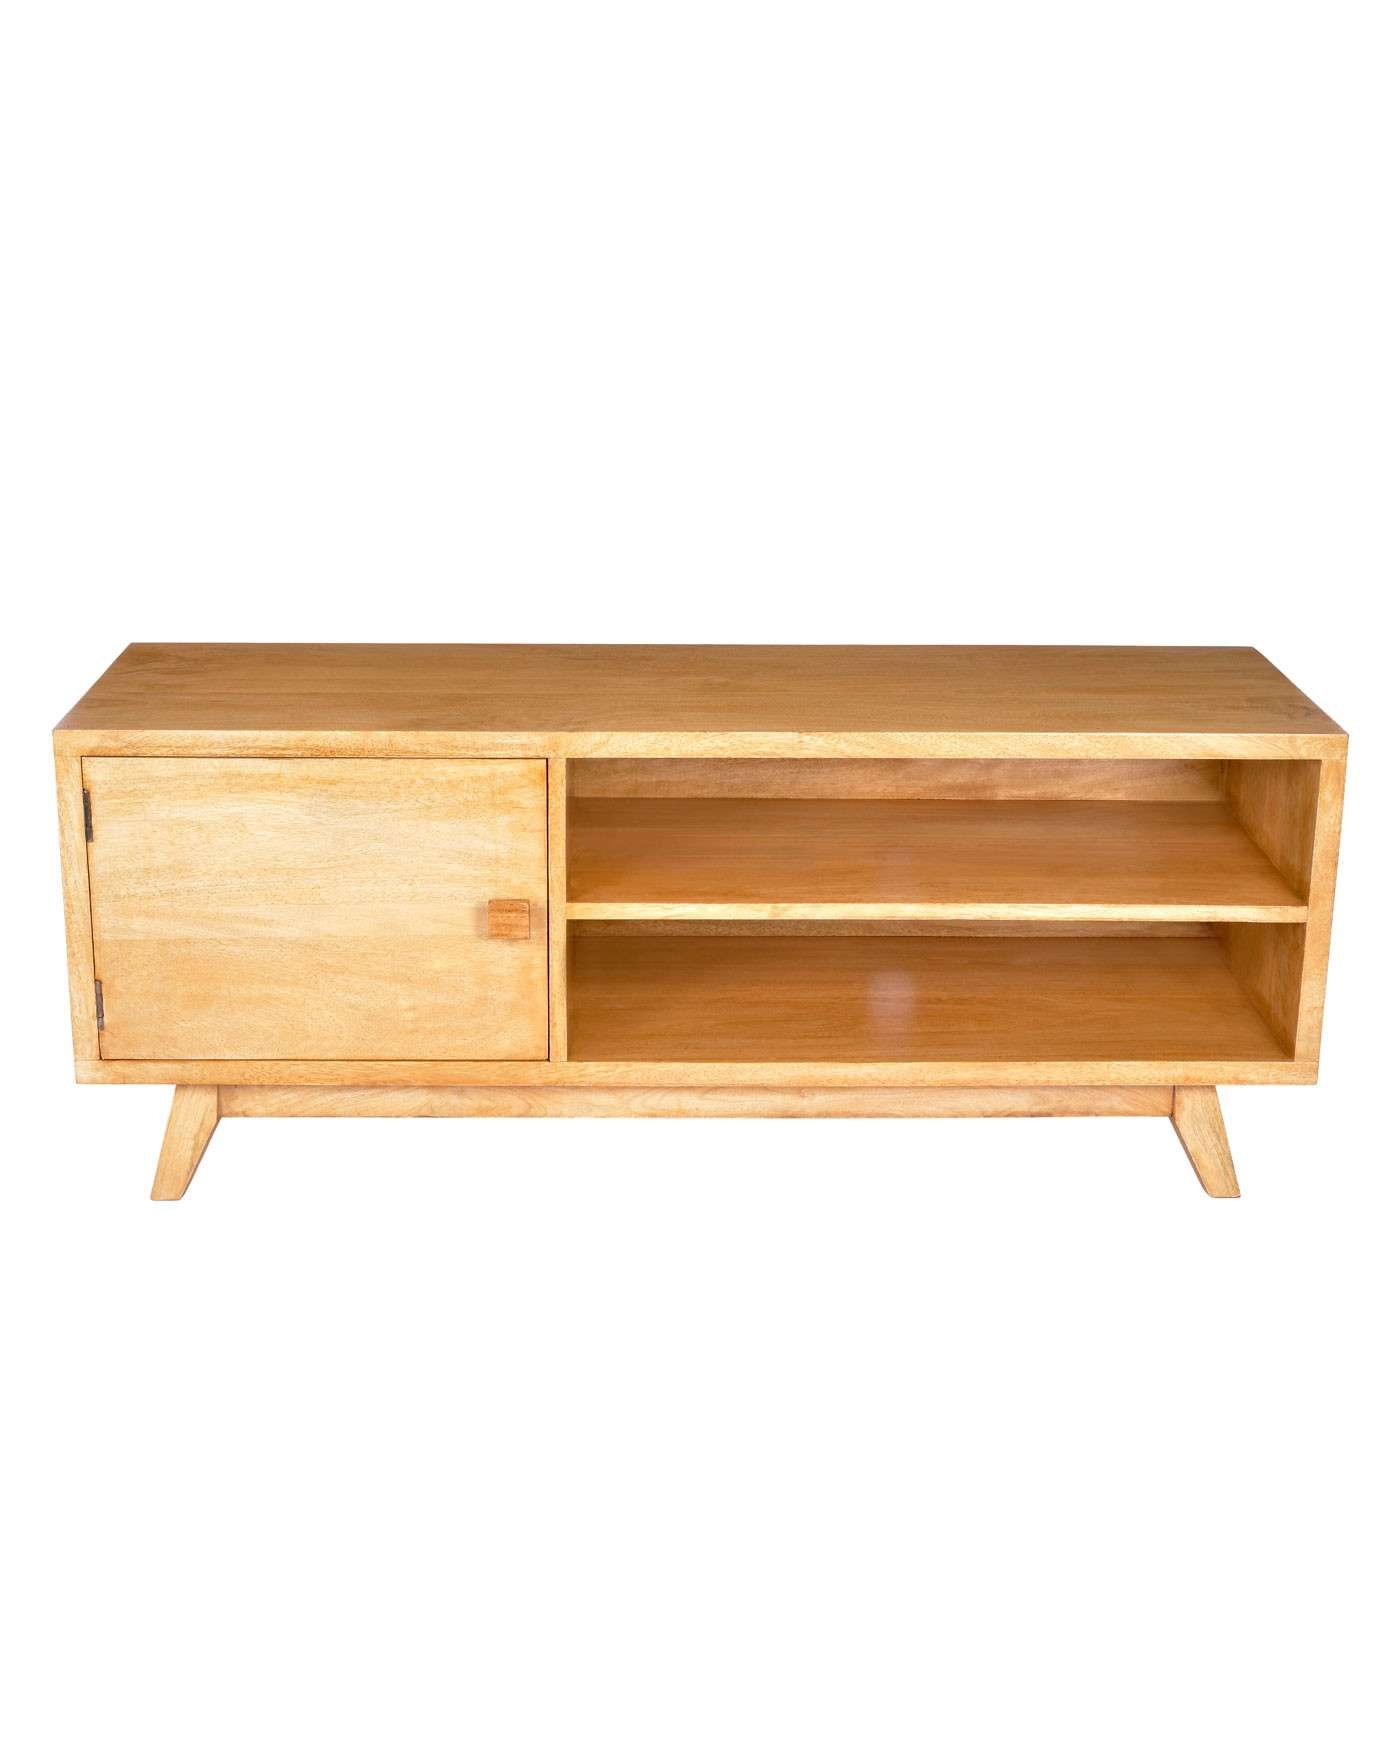 Retro Wooden Tv Stand With Shelf 100% Solid Mango Wood Oak Shade Intended For Hard Wood Tv Stands (View 9 of 15)